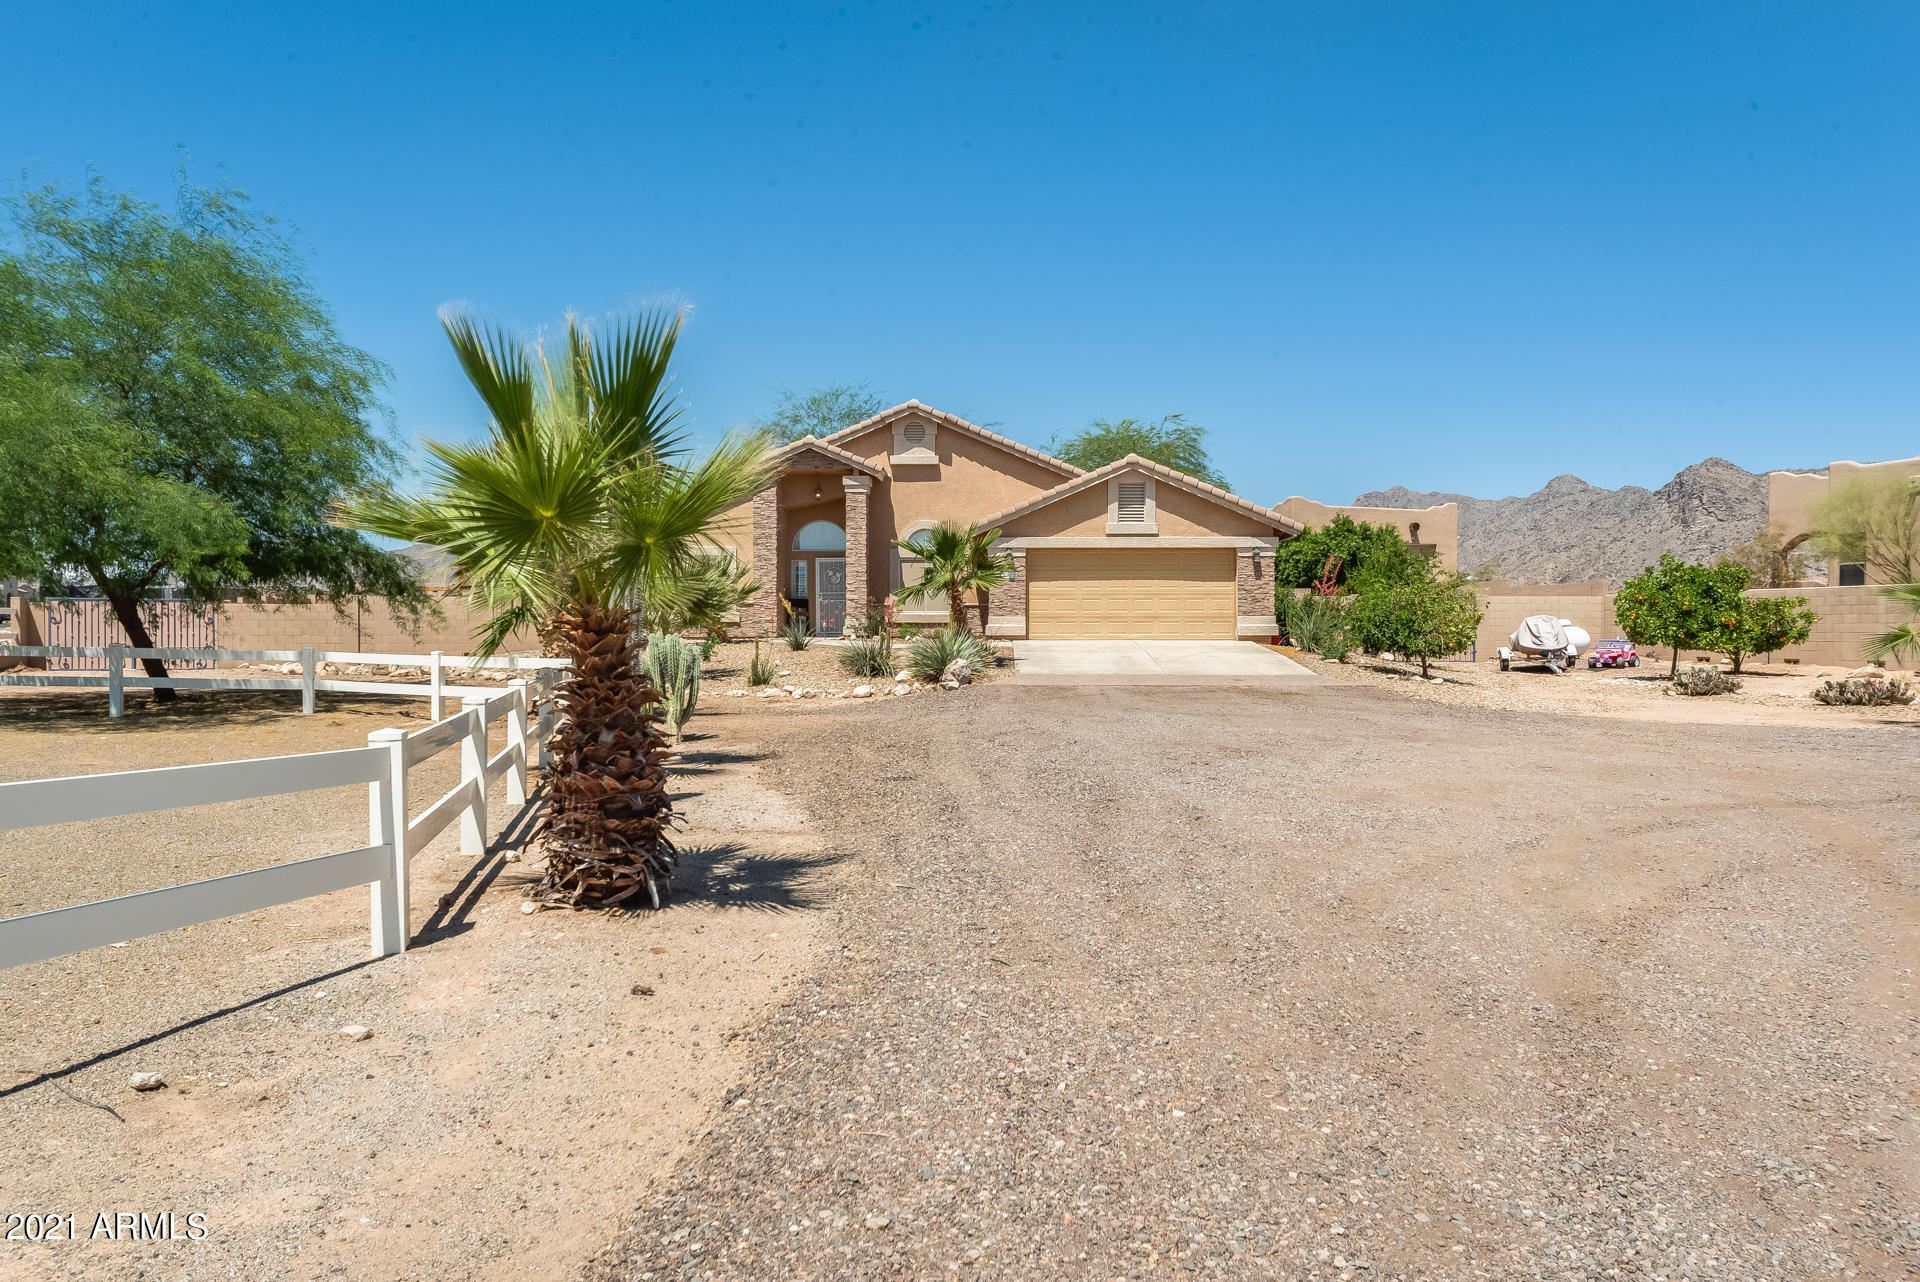 Photo of 5012 N TUTHILL Road, Litchfield Park, AZ 85340 (MLS # 6233258)